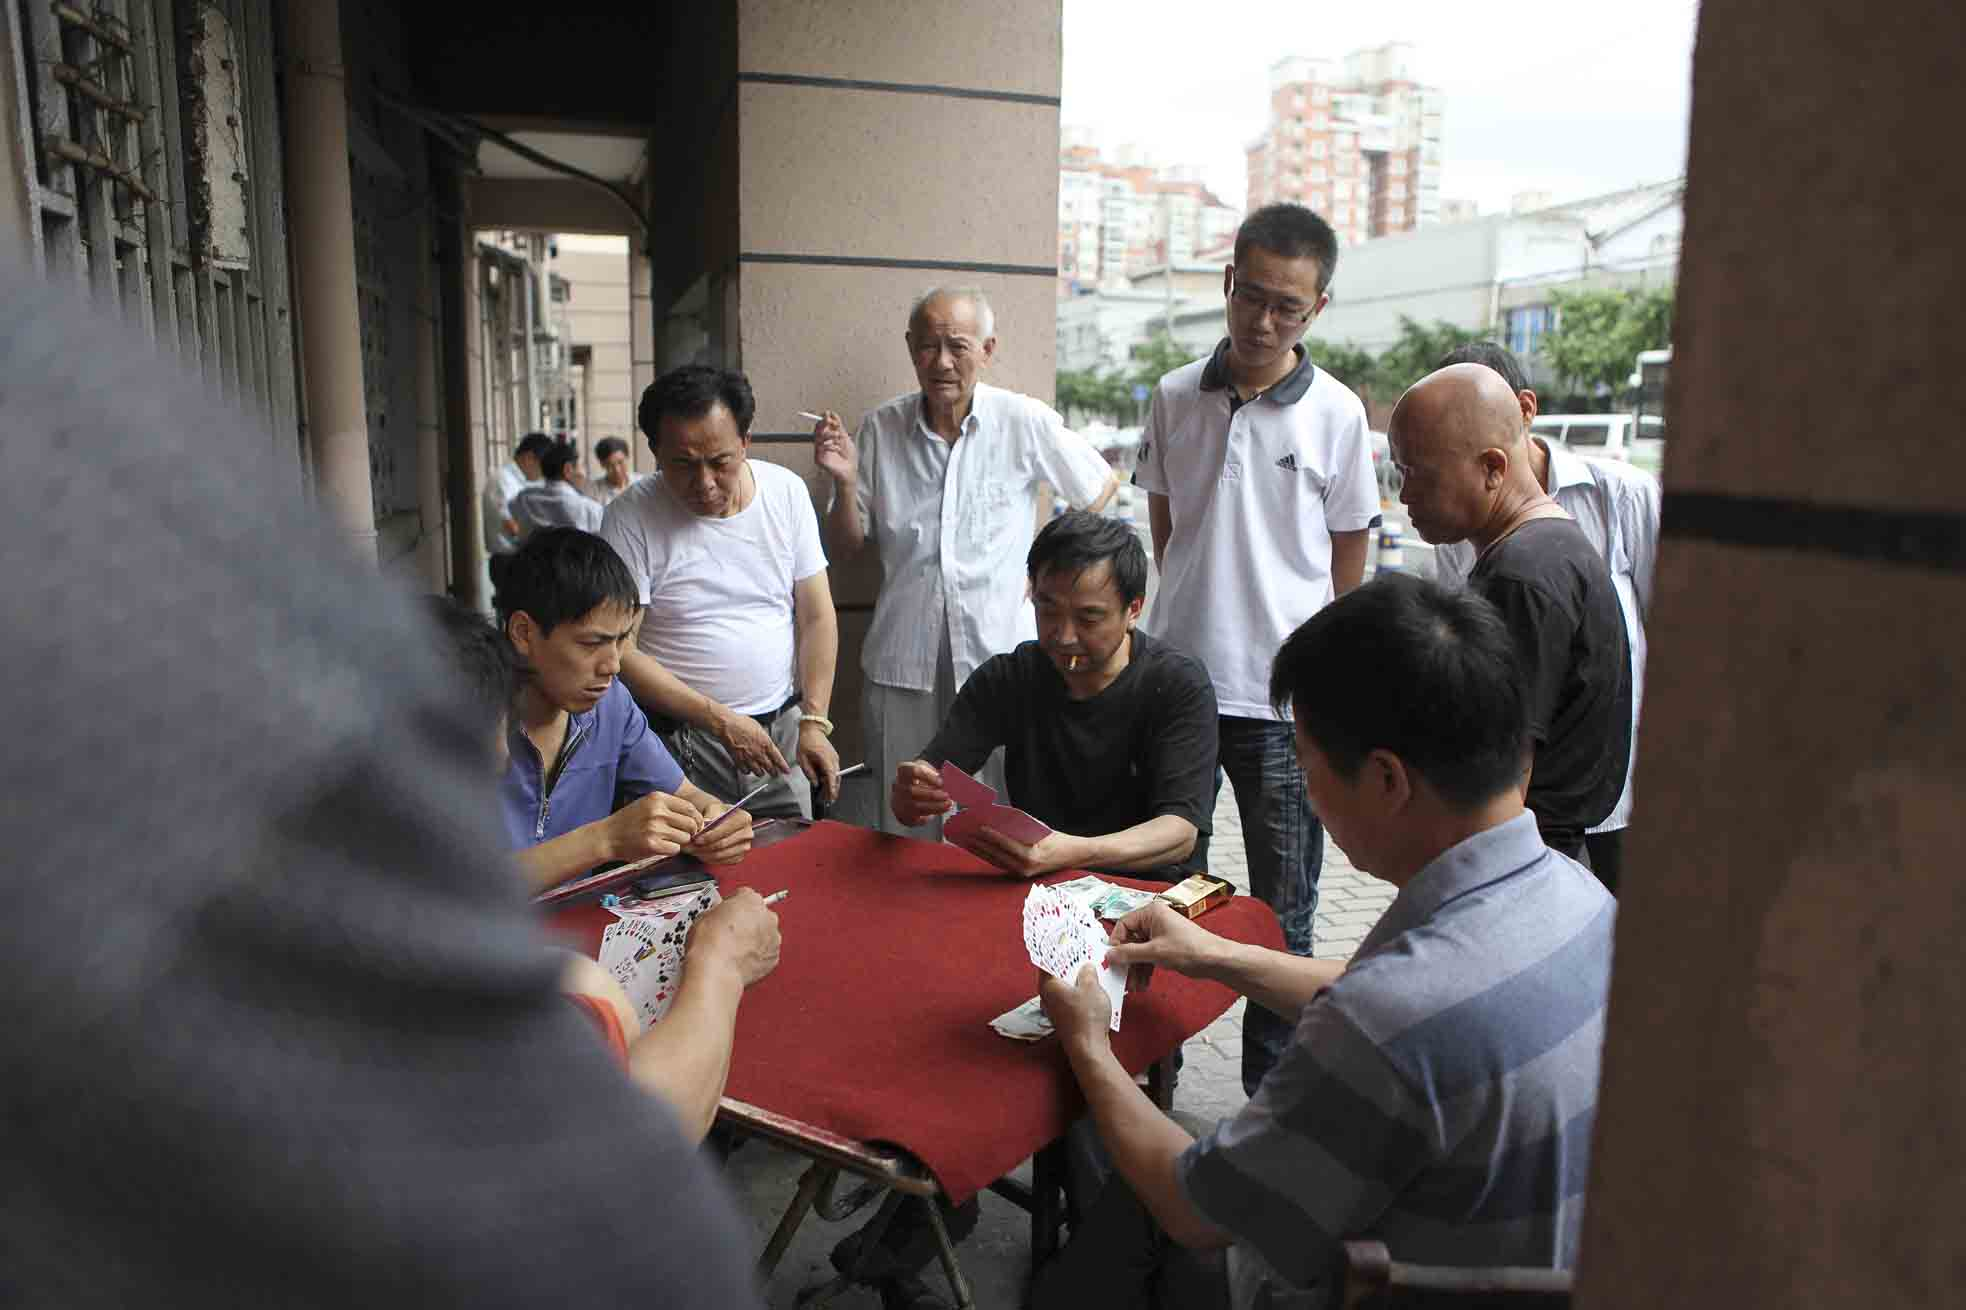 Mahjong in the streets 05